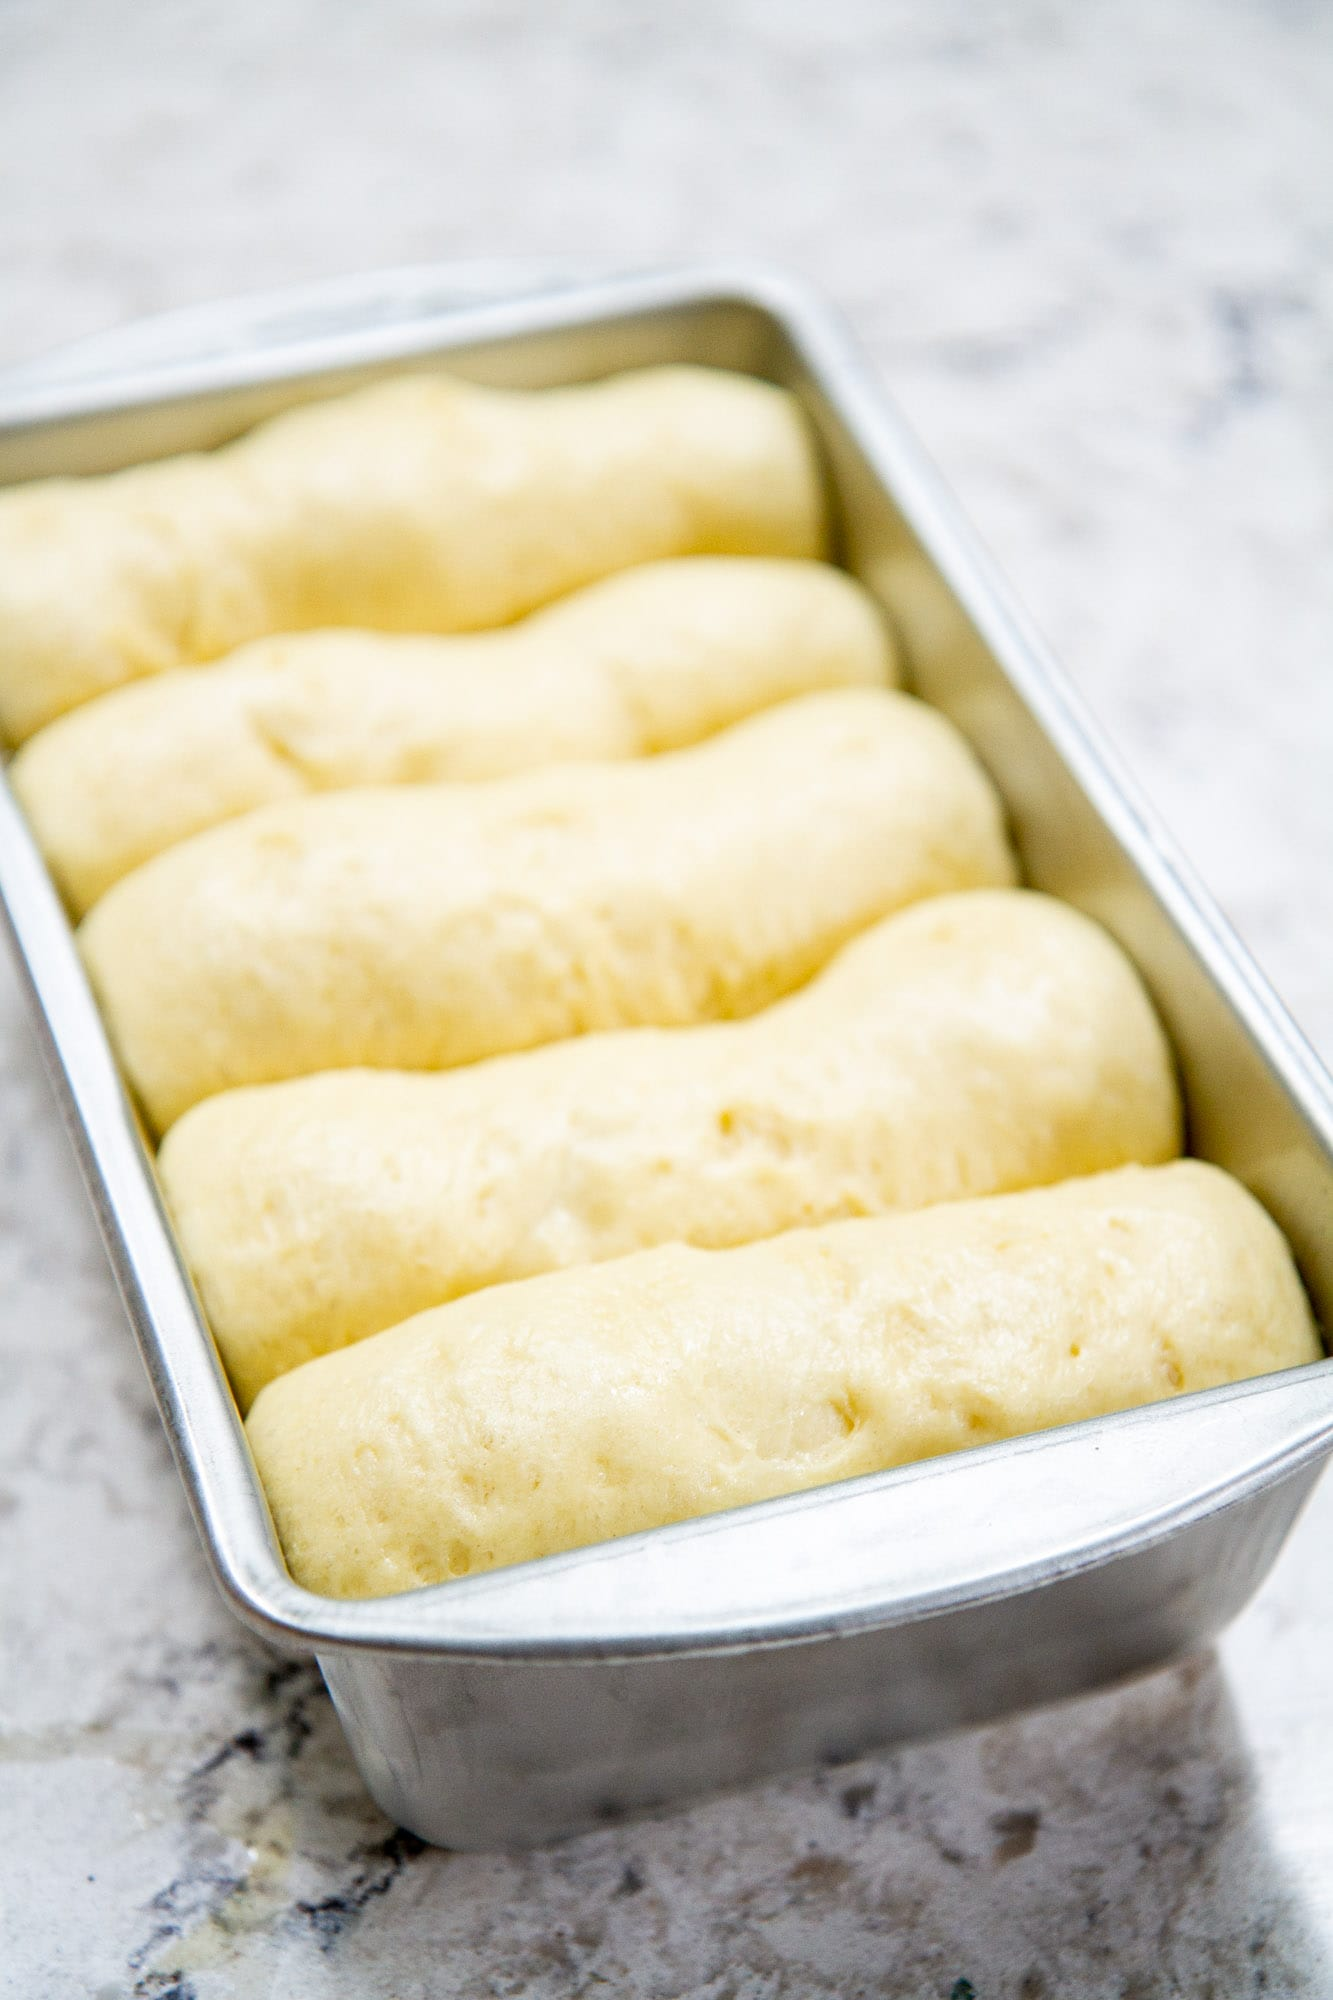 risen classic brioche loaf bread in baking pan